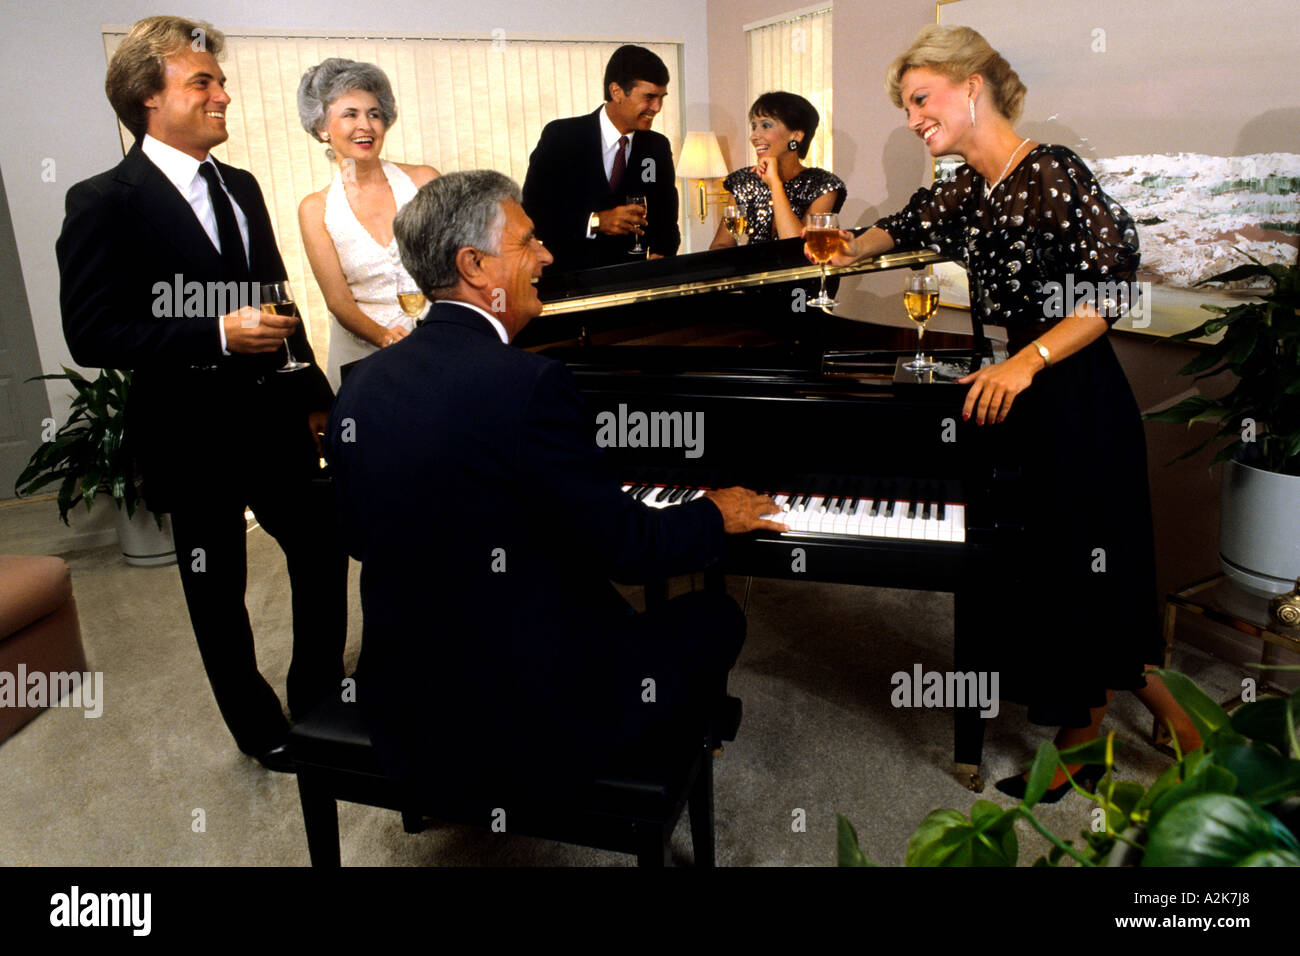 Elegantly dressed couples at dinner party playing the piano and having drinks in the good life - Stock Image